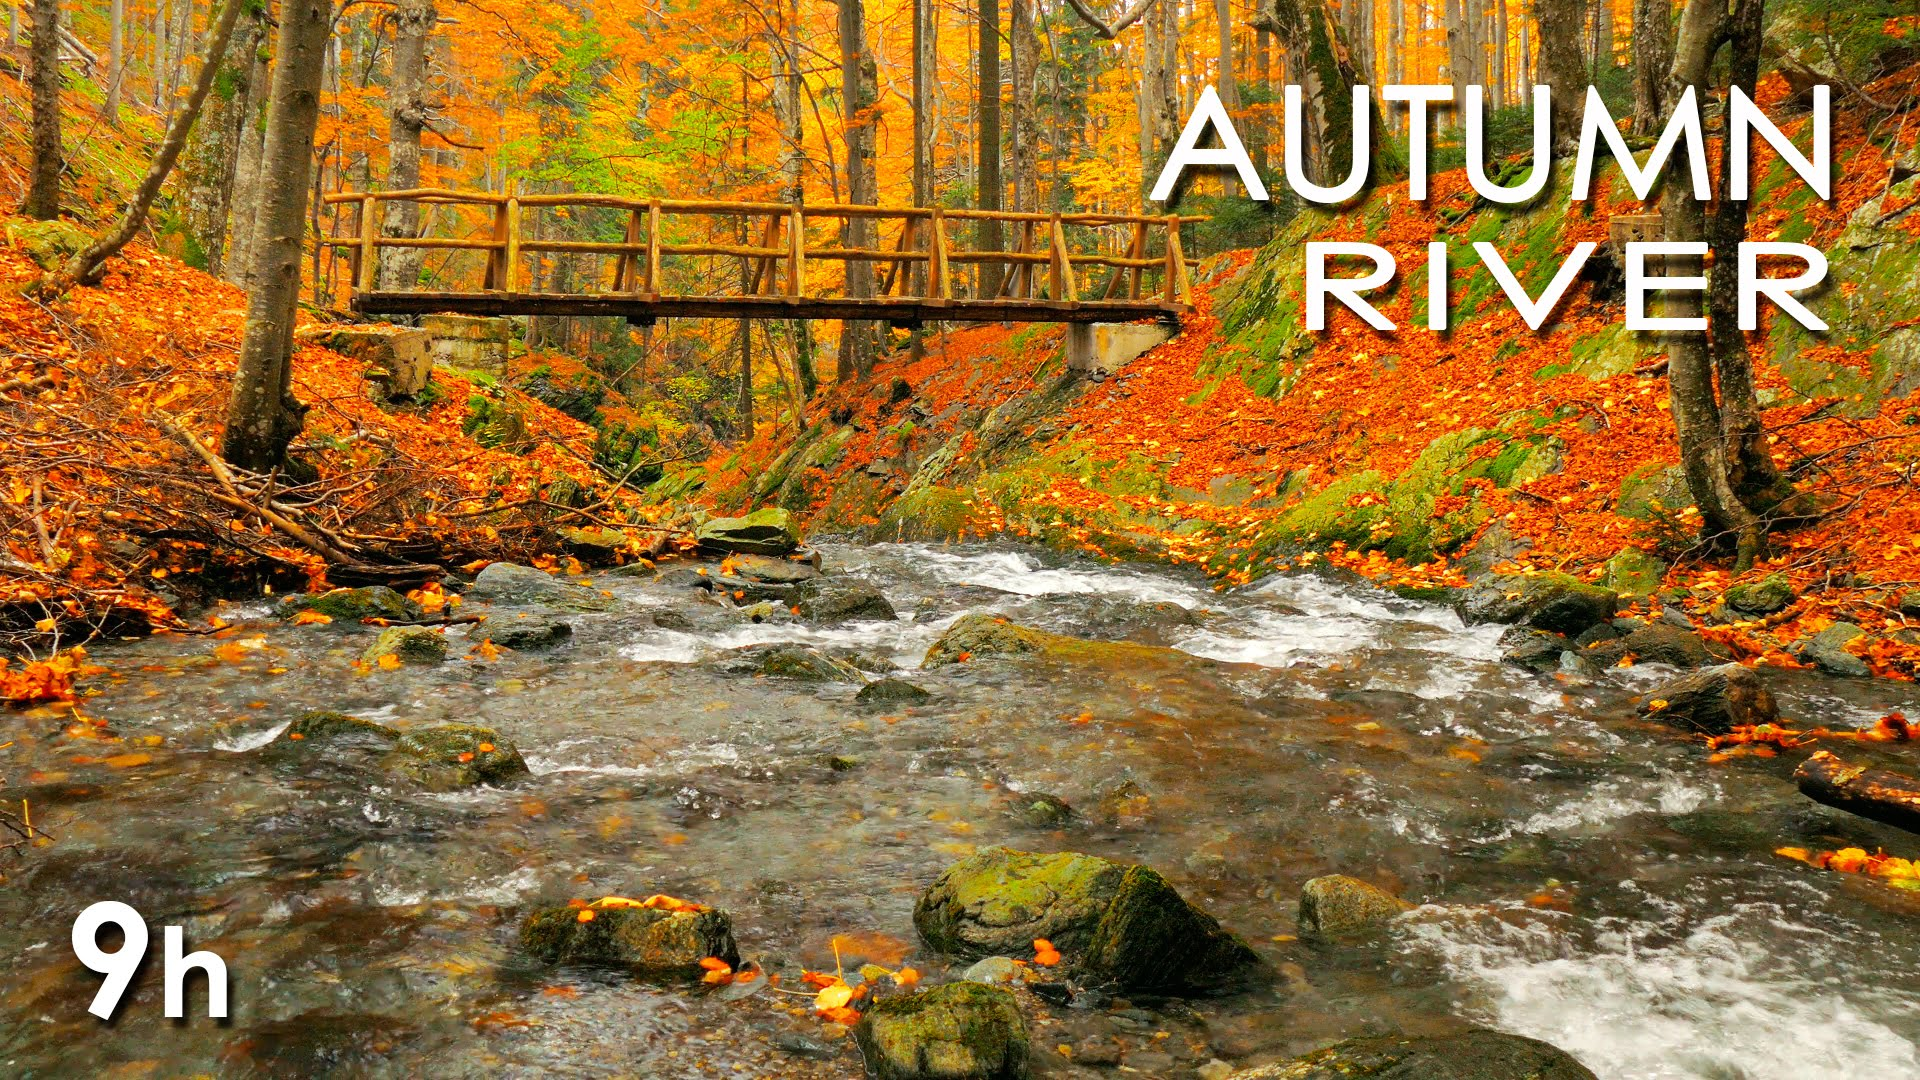 Autumn River Sounds - Relaxing Nature Video - Sleep/ Relax/ Study ...